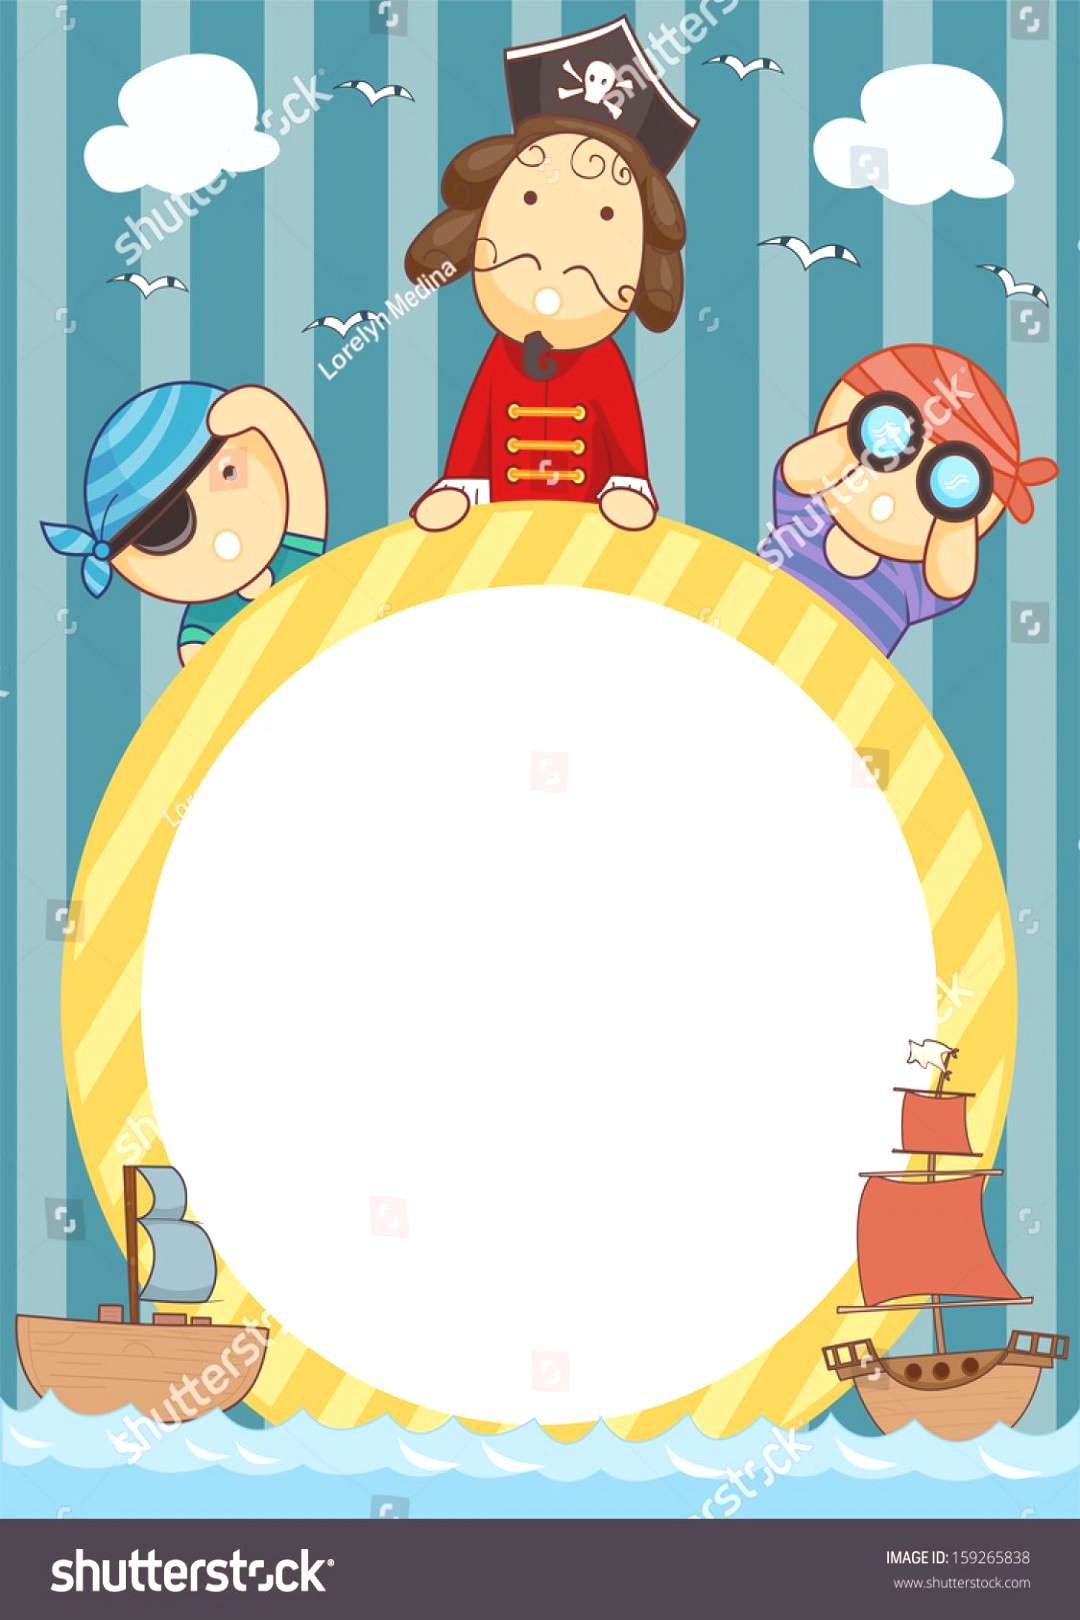 Frame Illustration of Pirates Holding a Circular Frame Flanked by Pirate Ships ,